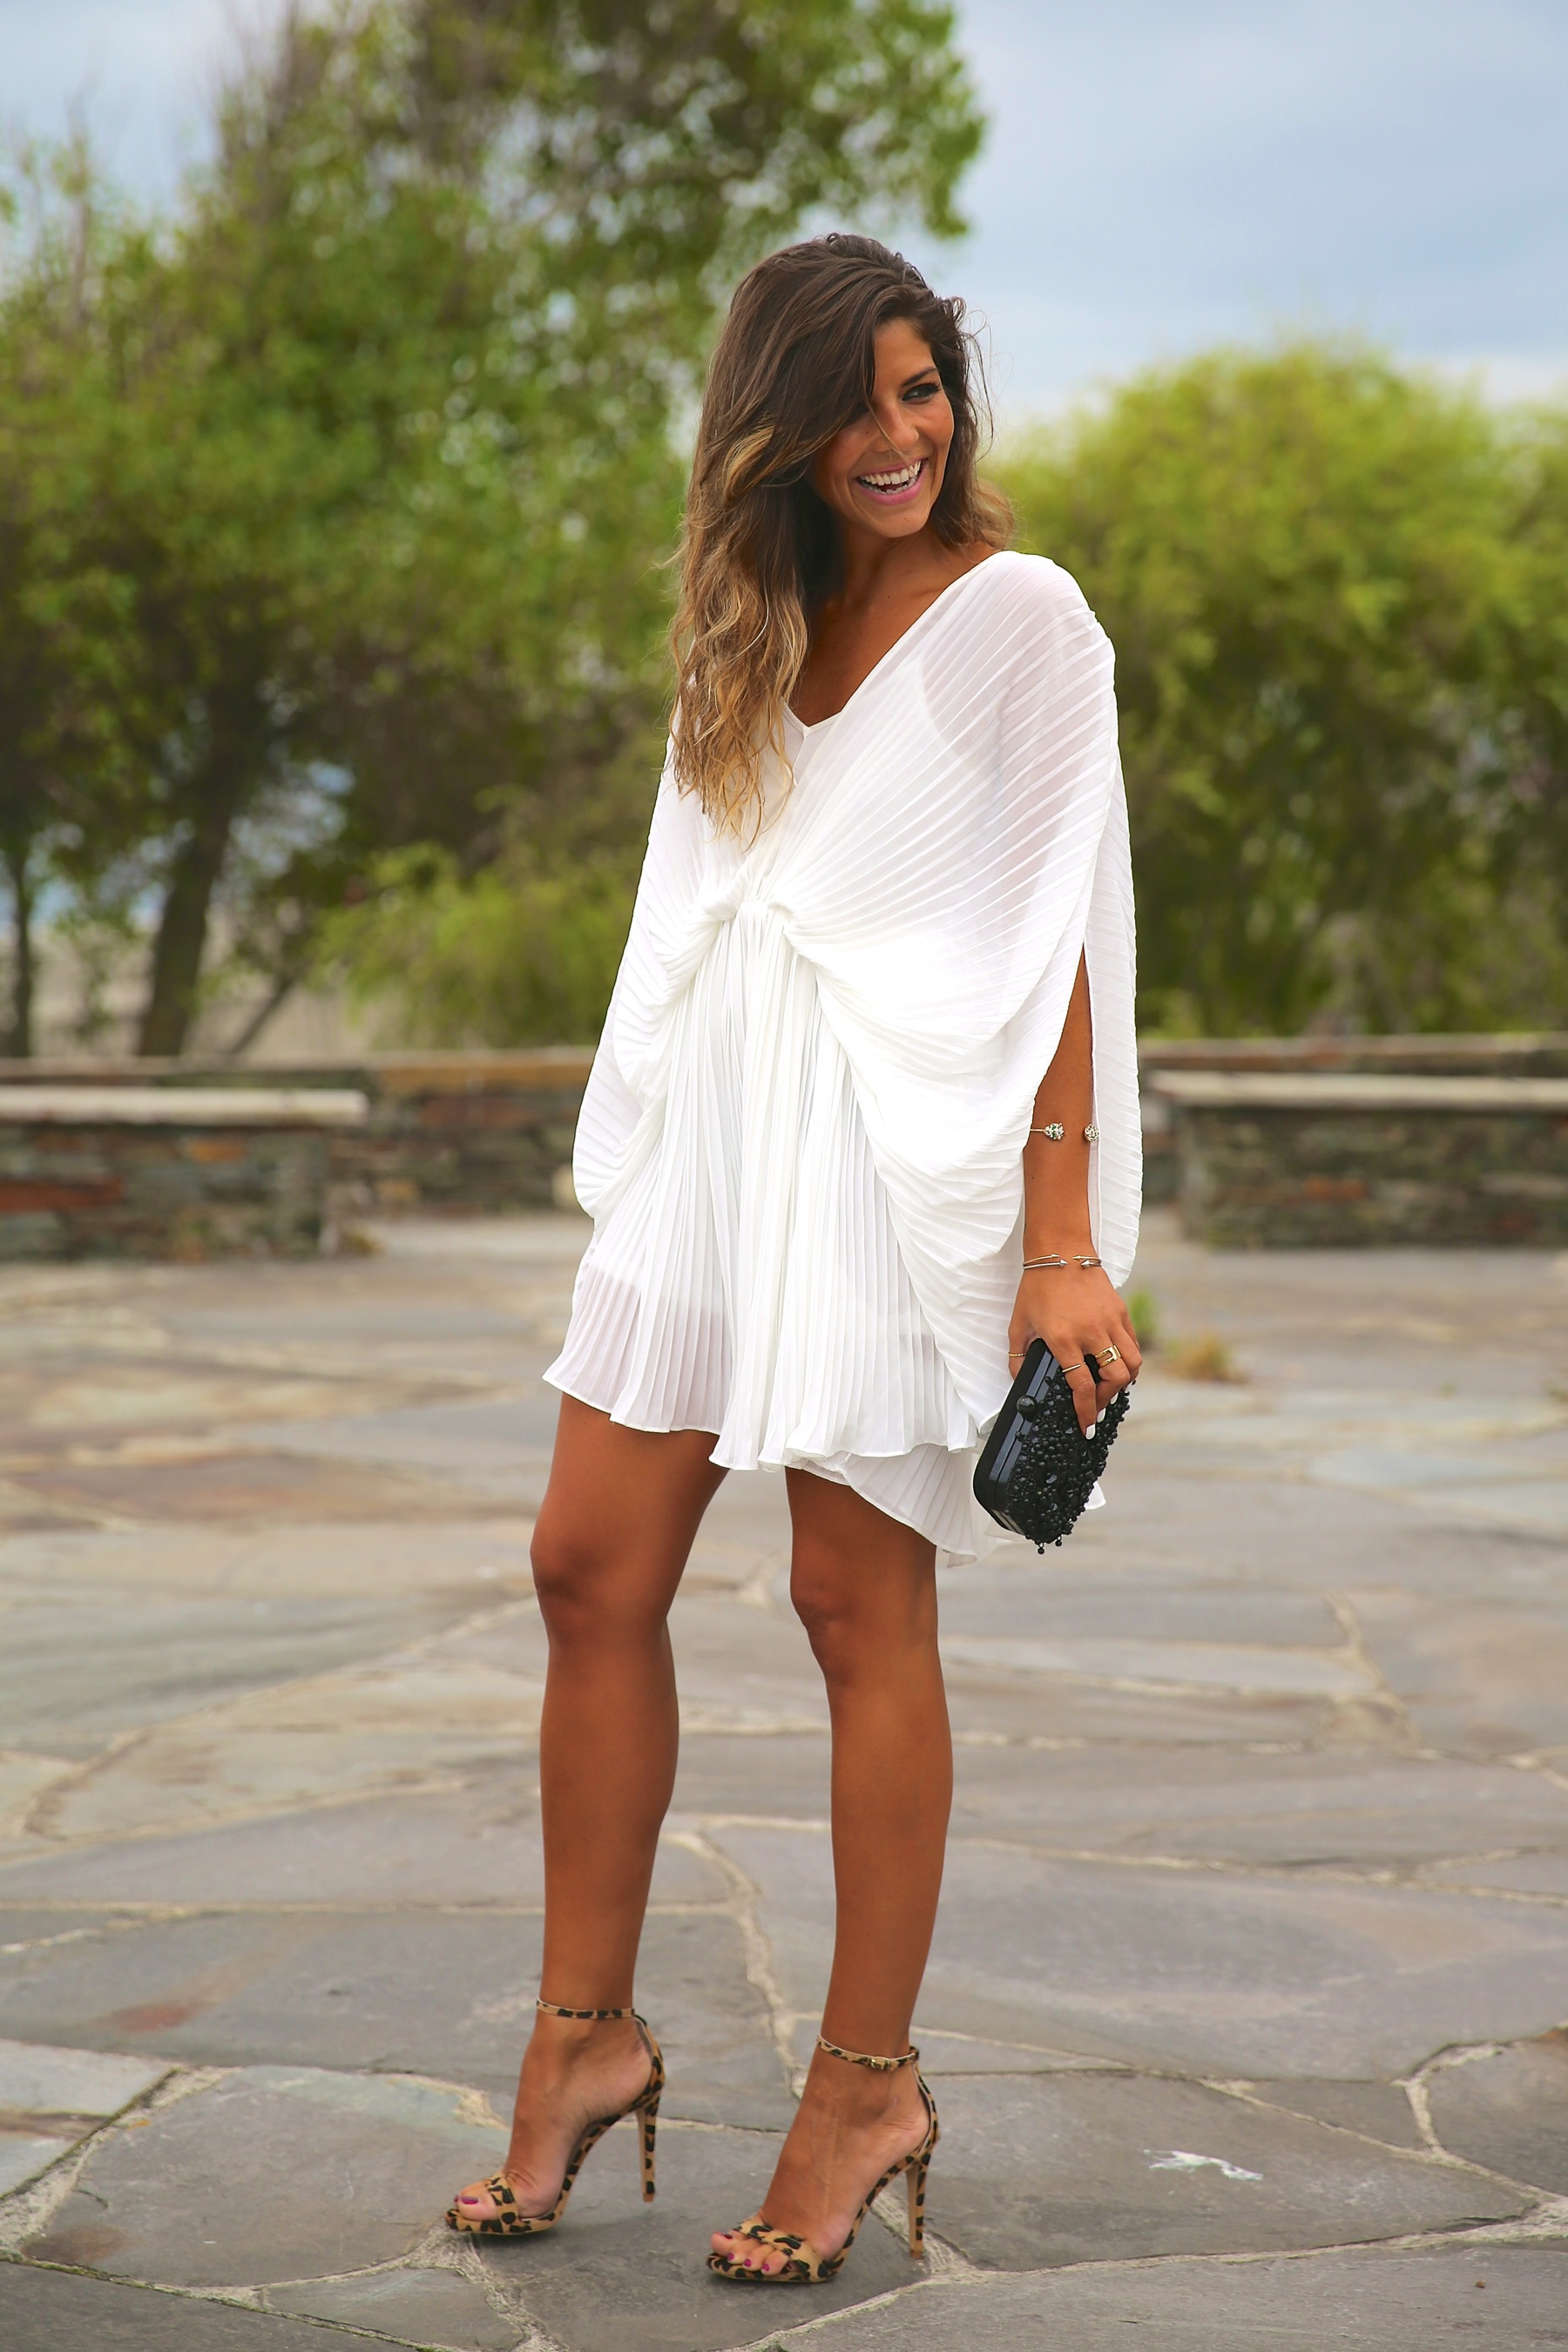 trendy_taste-look-outfit-street_style-fashion_spain-moda_españa-blog-blogger-vestido_blanco-white_dress-müic-jewels-joyas-leo_sandals-sandalias_leopardo-clutch_pedreria-14